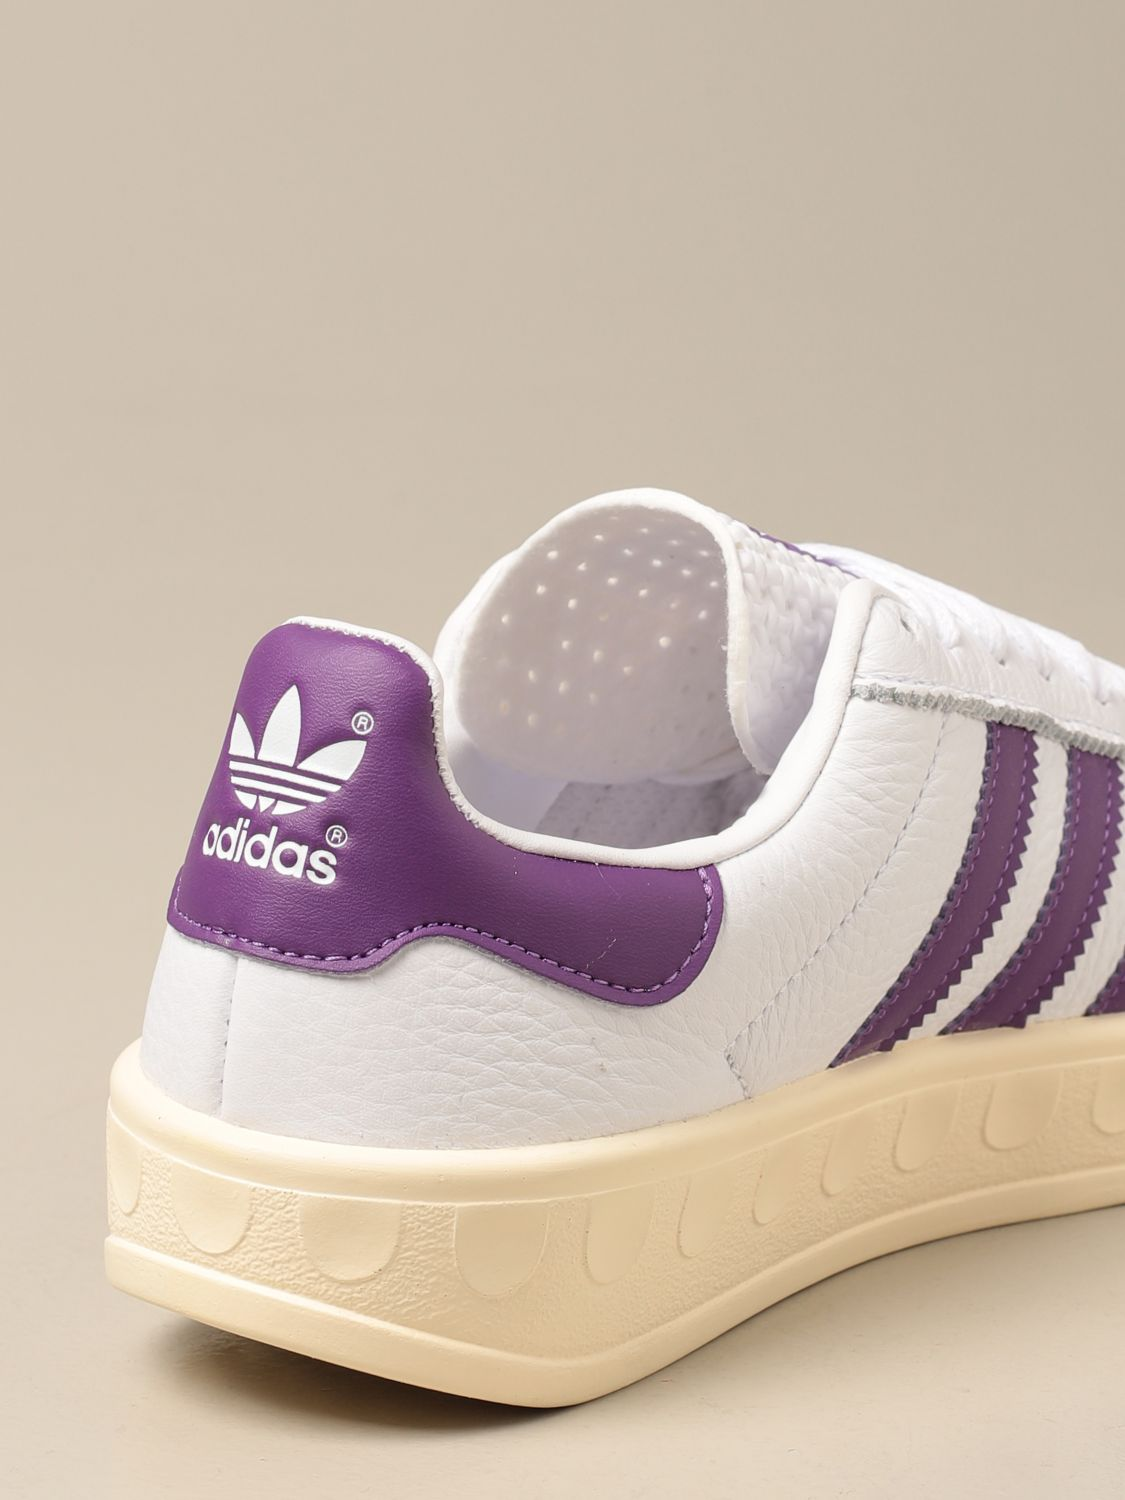 Sneakers Adidas Originals: Madrid Adidas Originals sneakers in leather and suede white 3